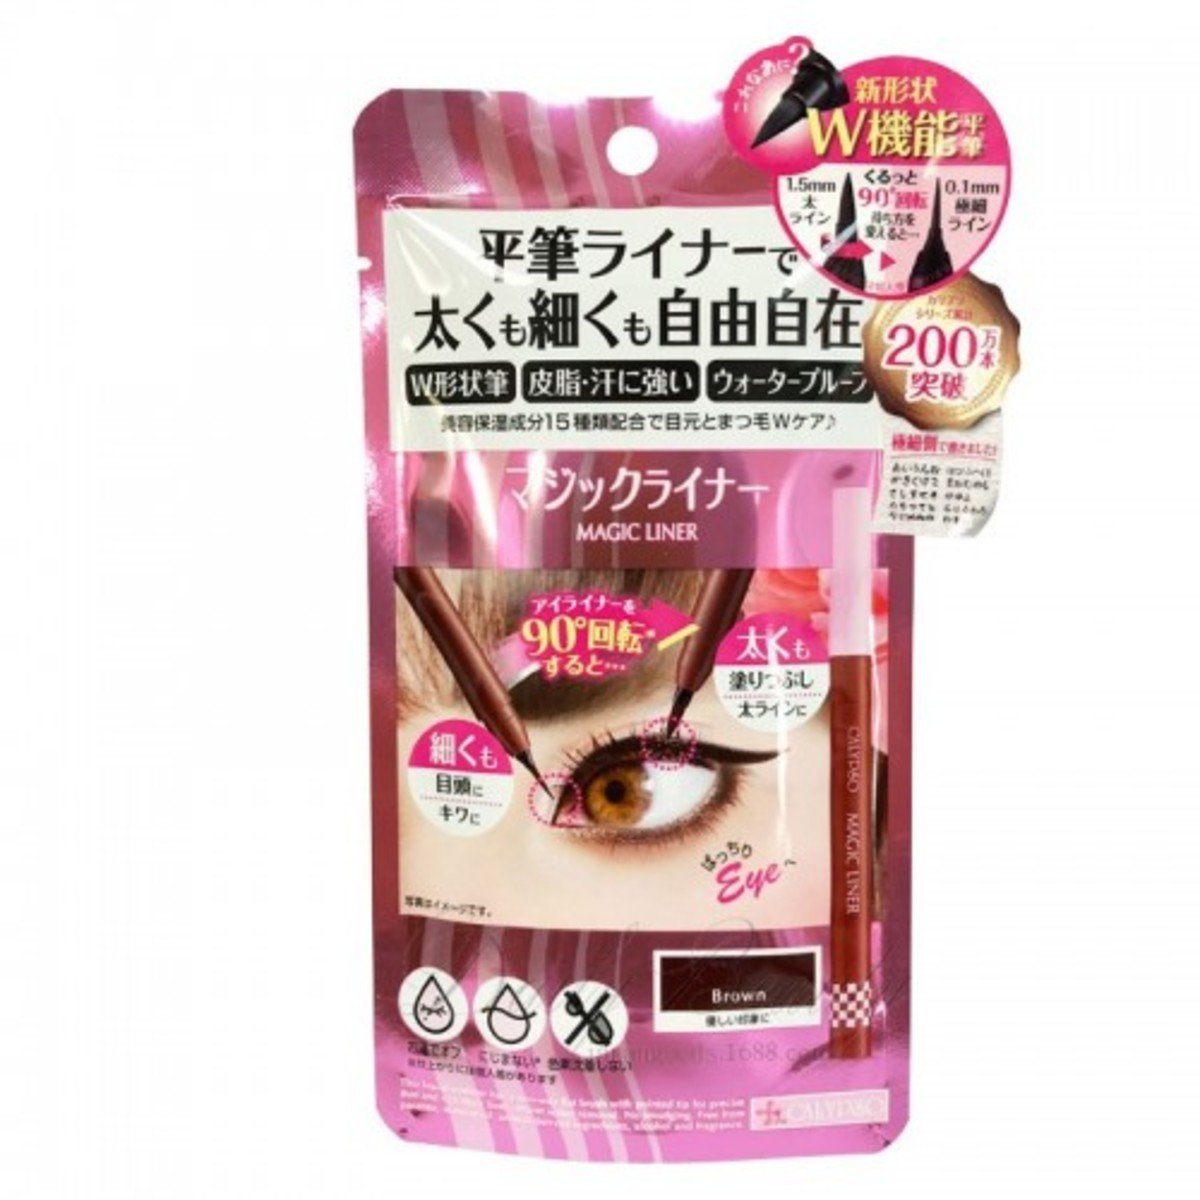 Magic Eyeliner (brown) 0.6ml (Parallel Imports Product)